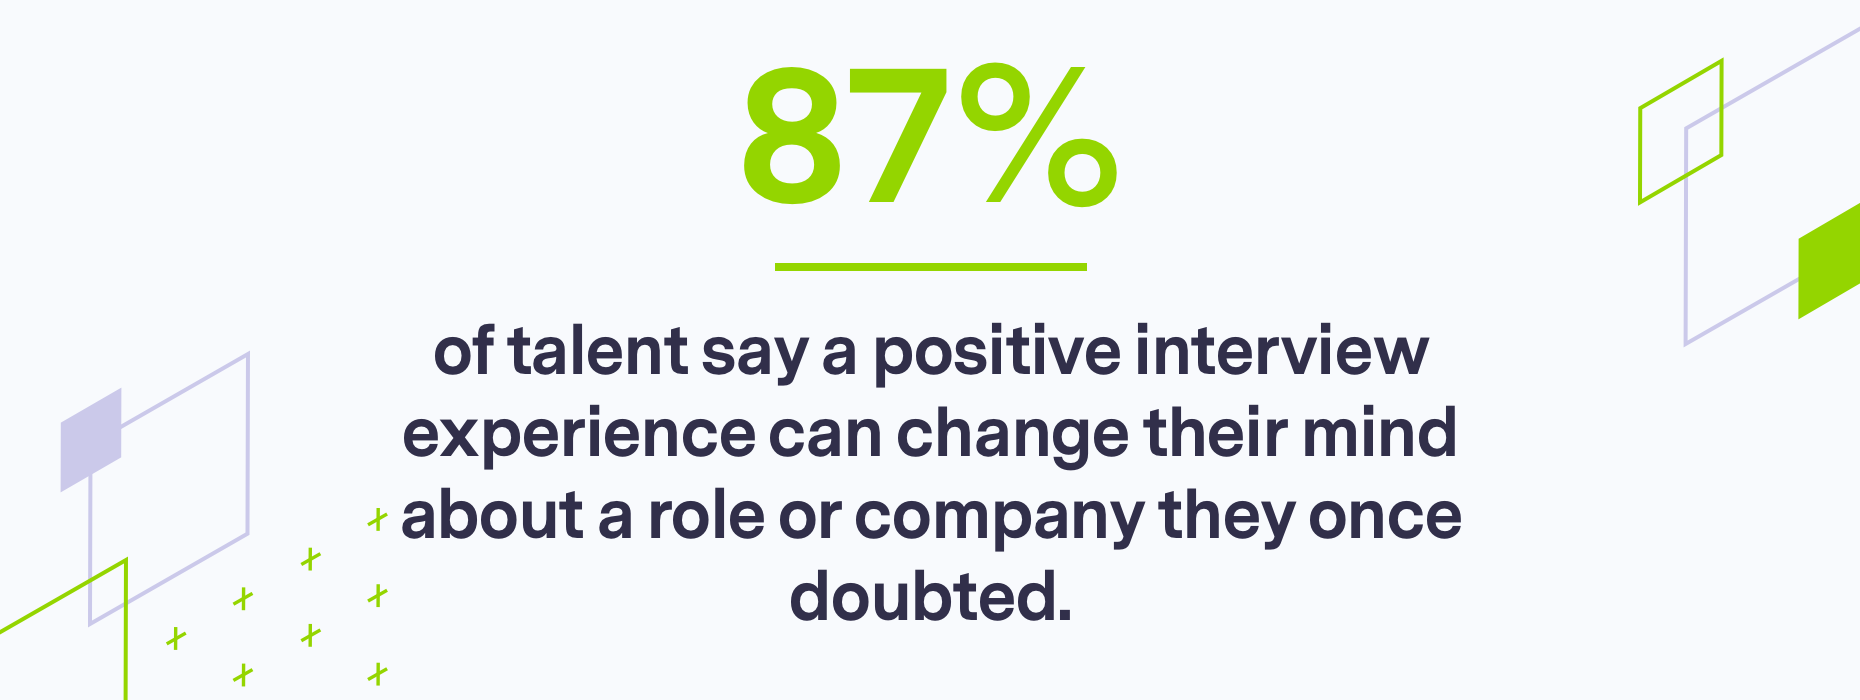 Branded stat for consistent communication with recruitment